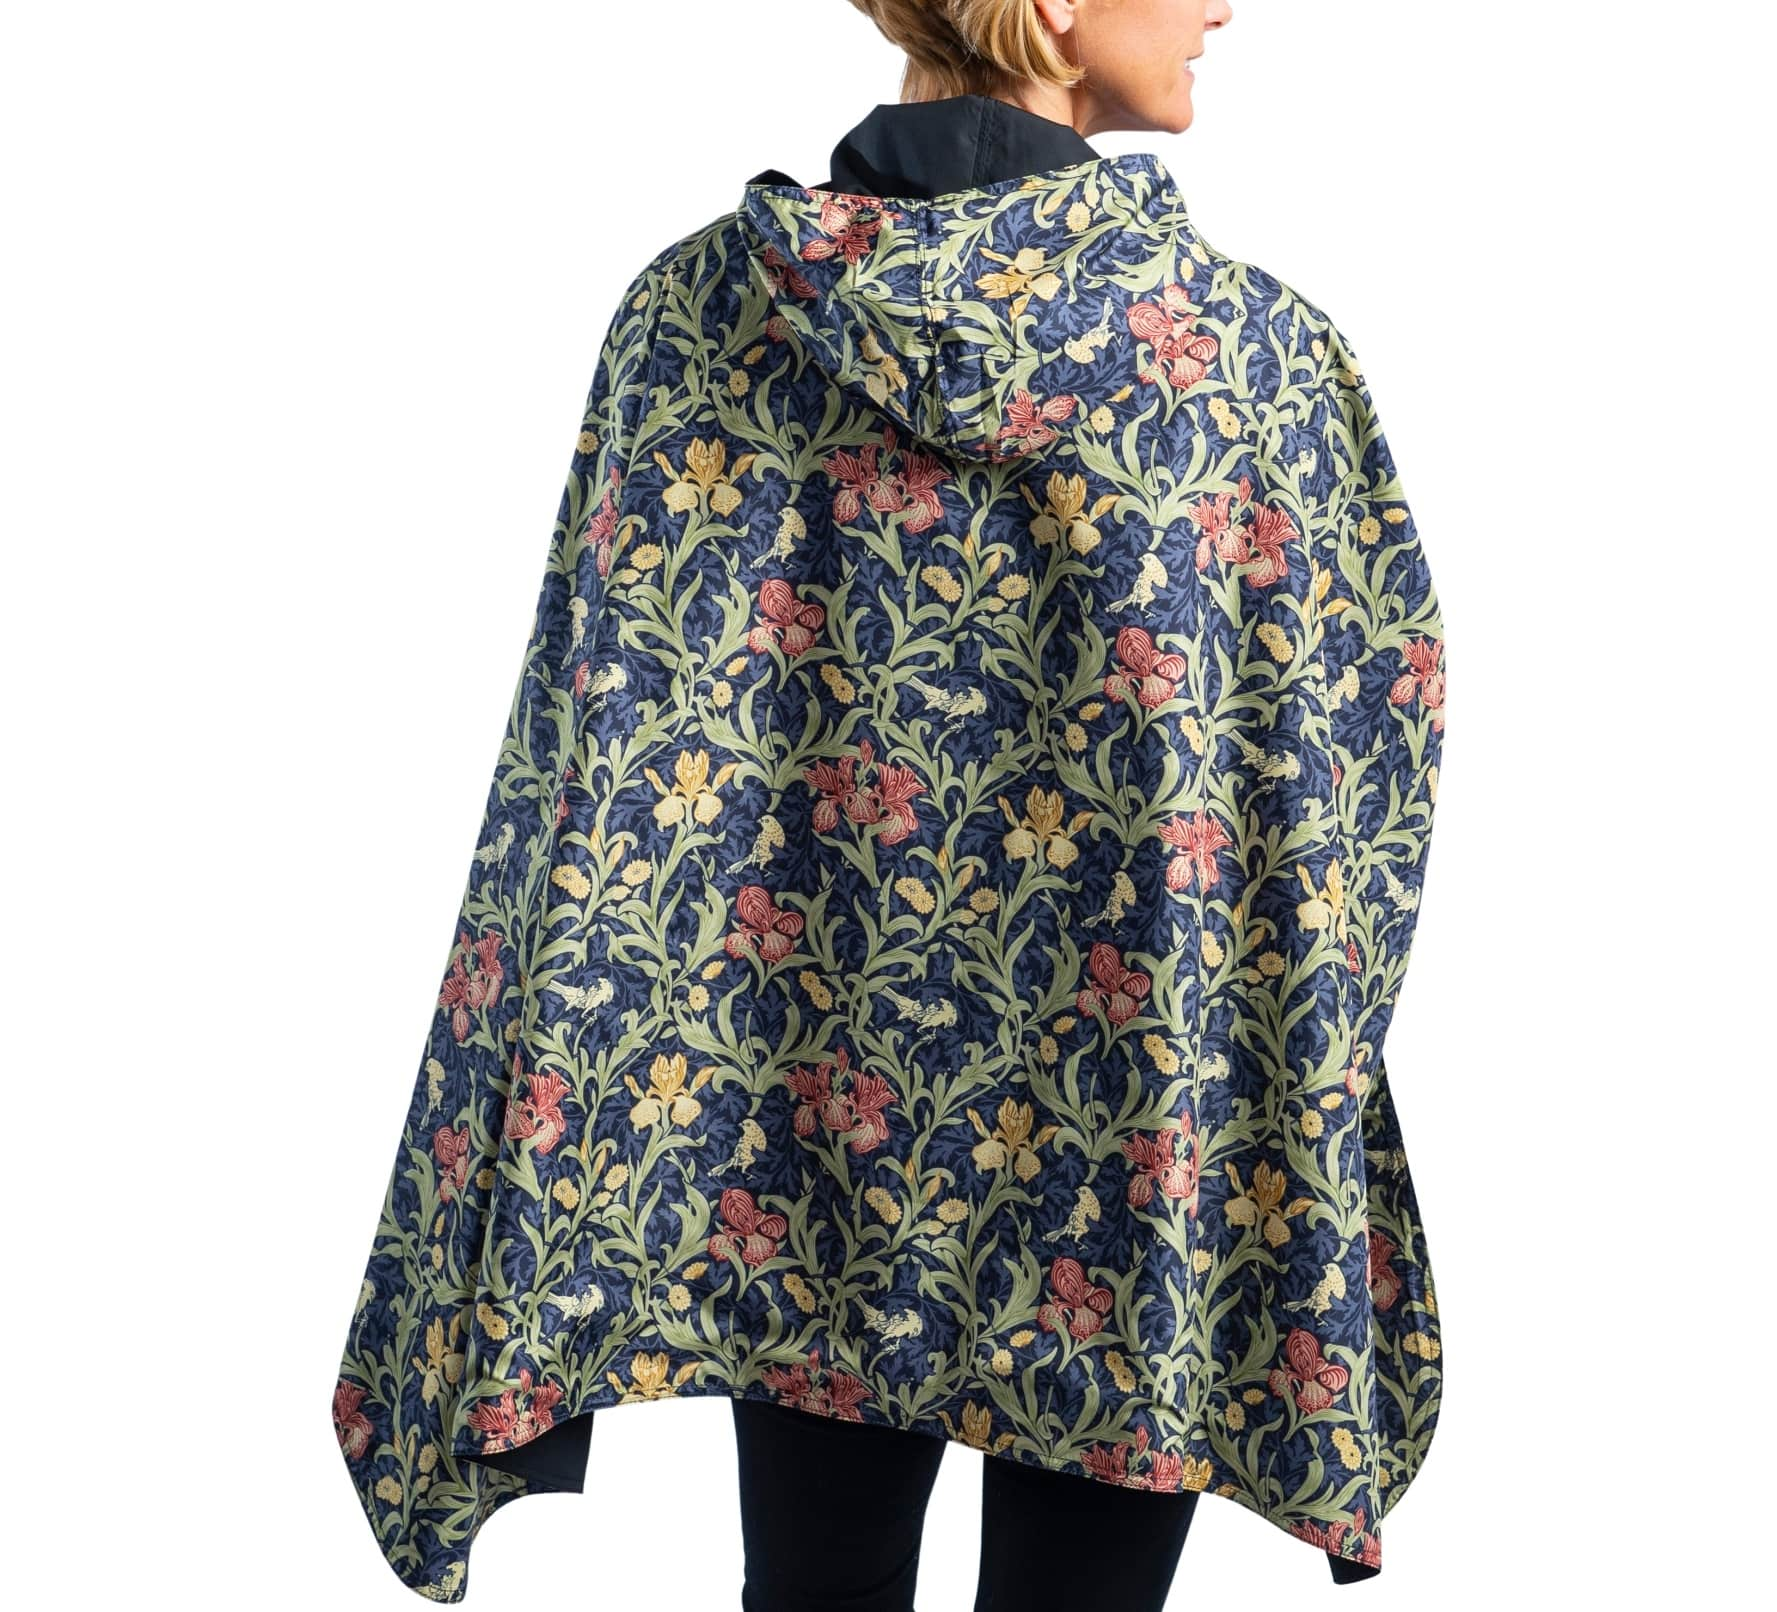 Woman wearing a Black/William Morris Golden Flowers travel cape with the Black side out, revealing the William Morris Golden Folowers print at the lapels,necklines and cuffs